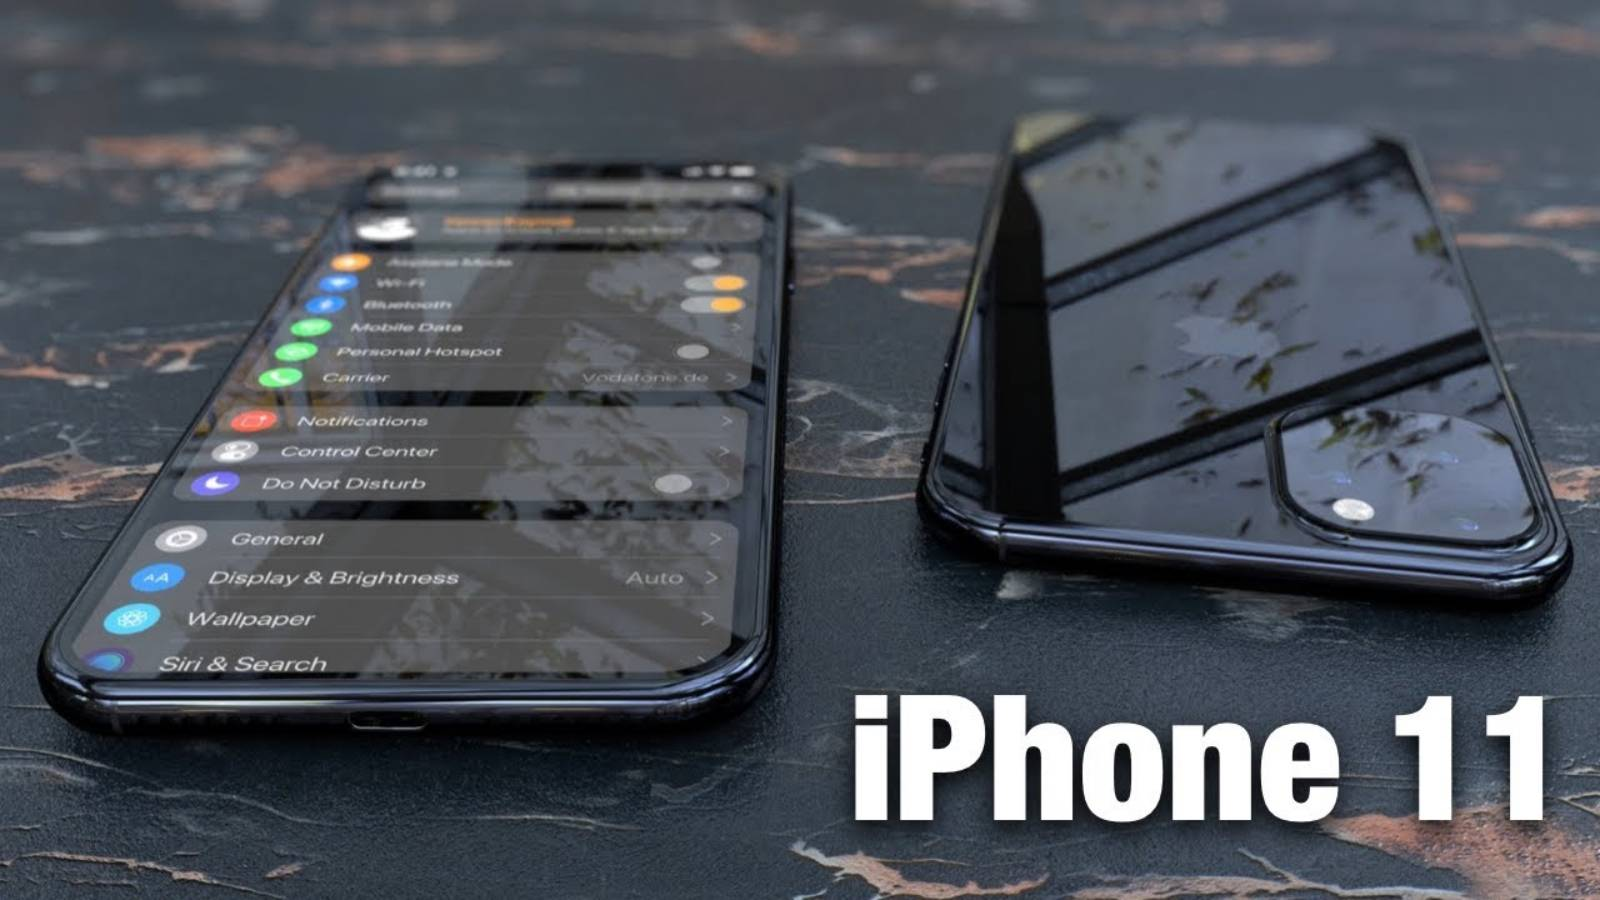 iPhone 11 antene